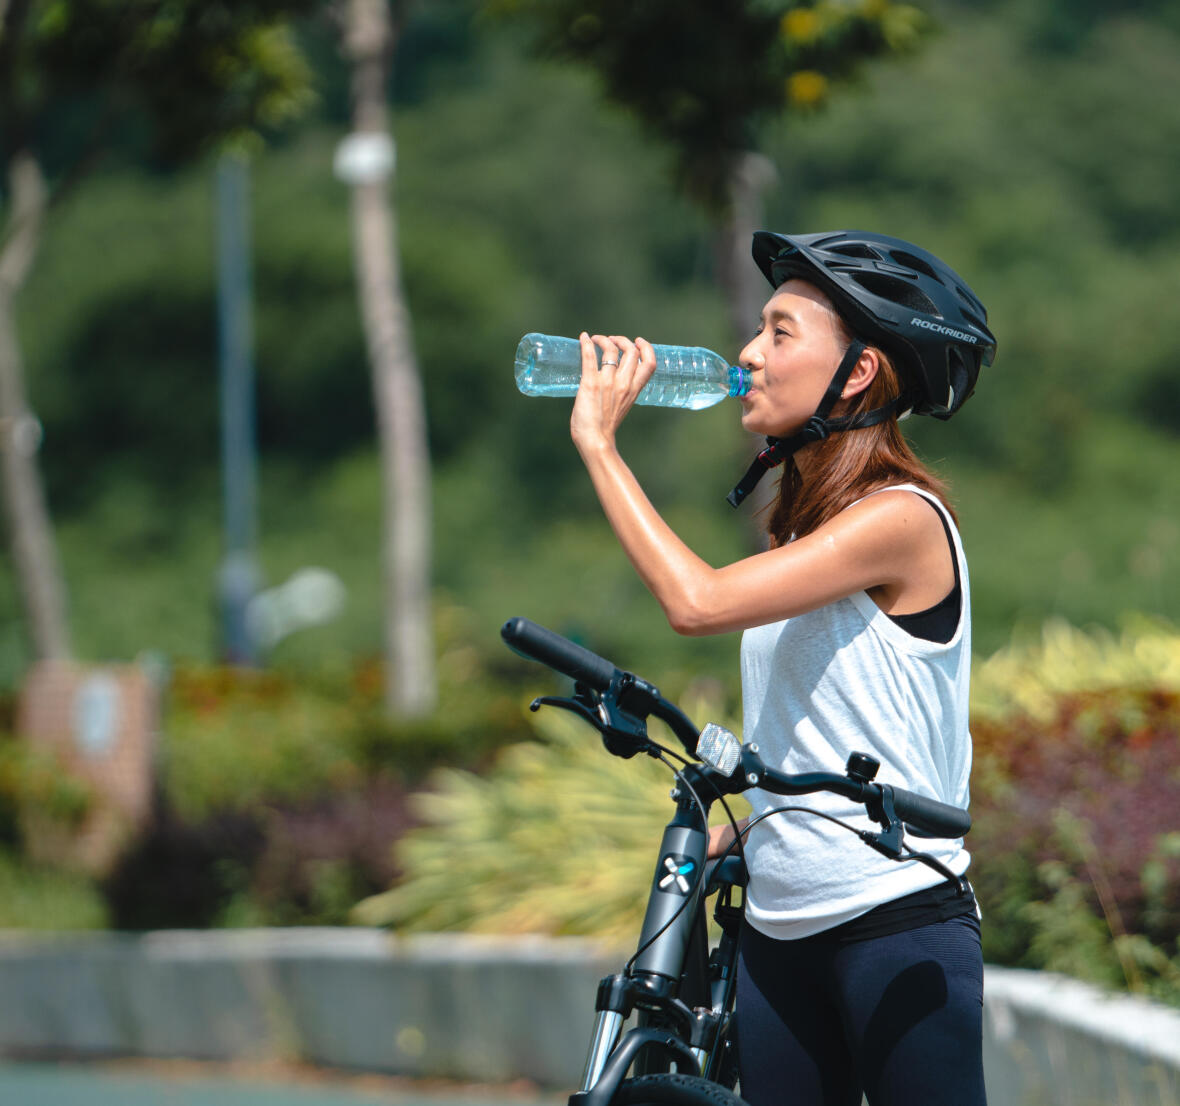 Carry enough water and drinks during cycling